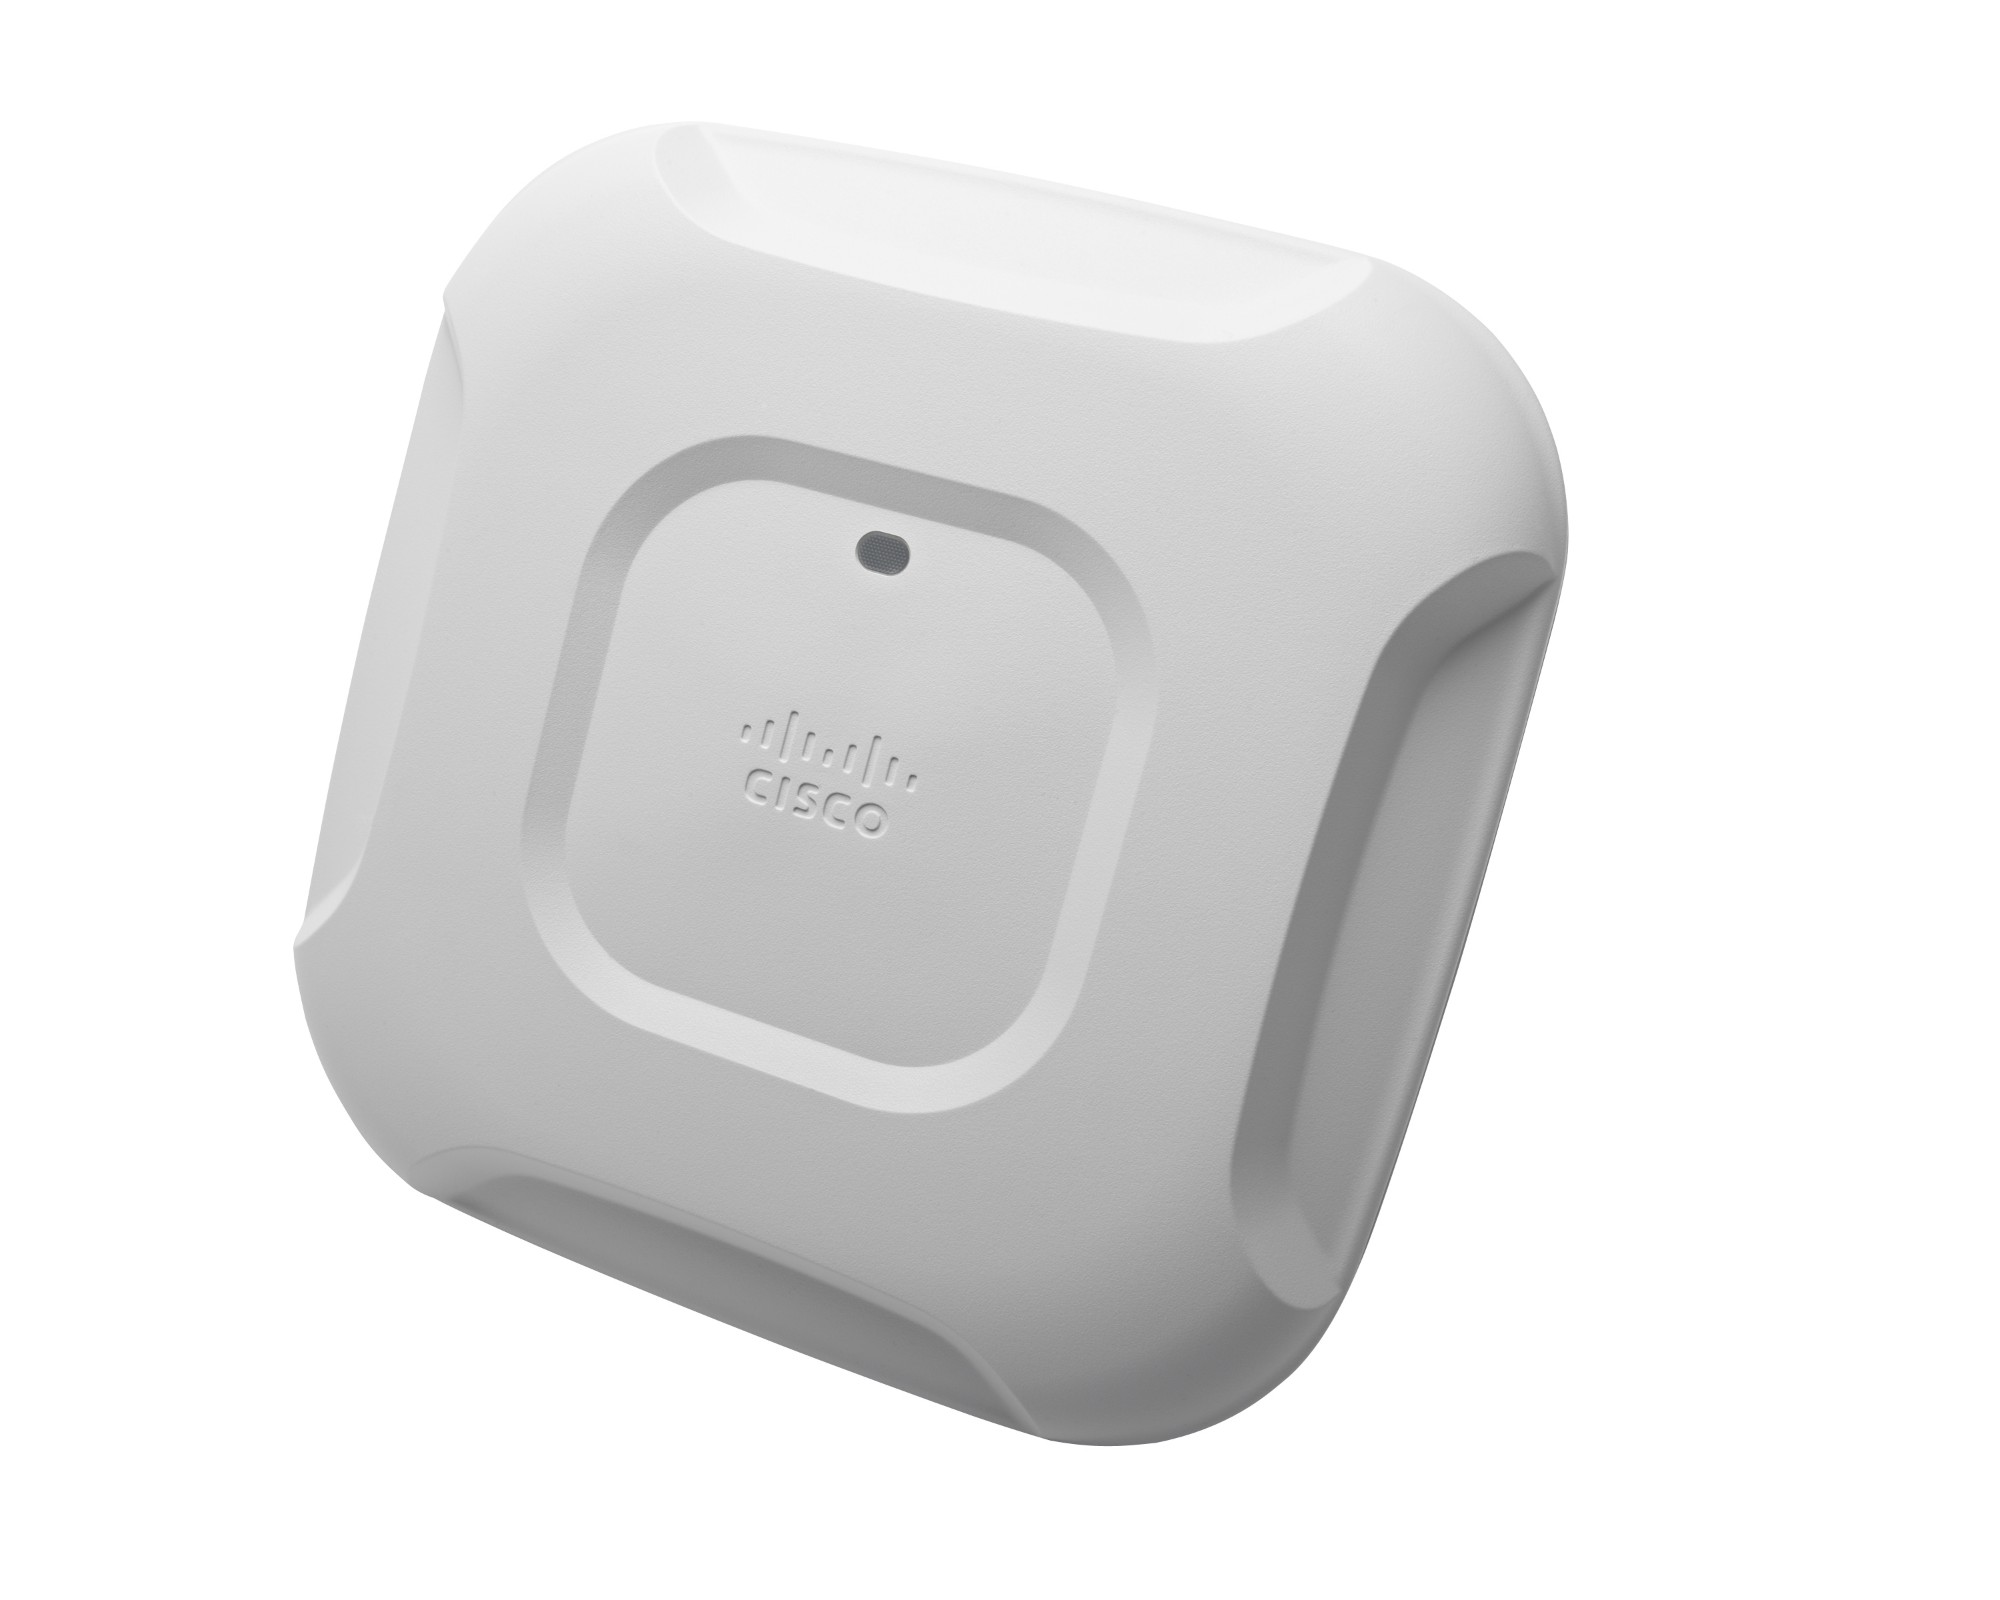 Cisco Aironet 3700i 1300Mbit/s Power over Ethernet (PoE) White WLAN access point